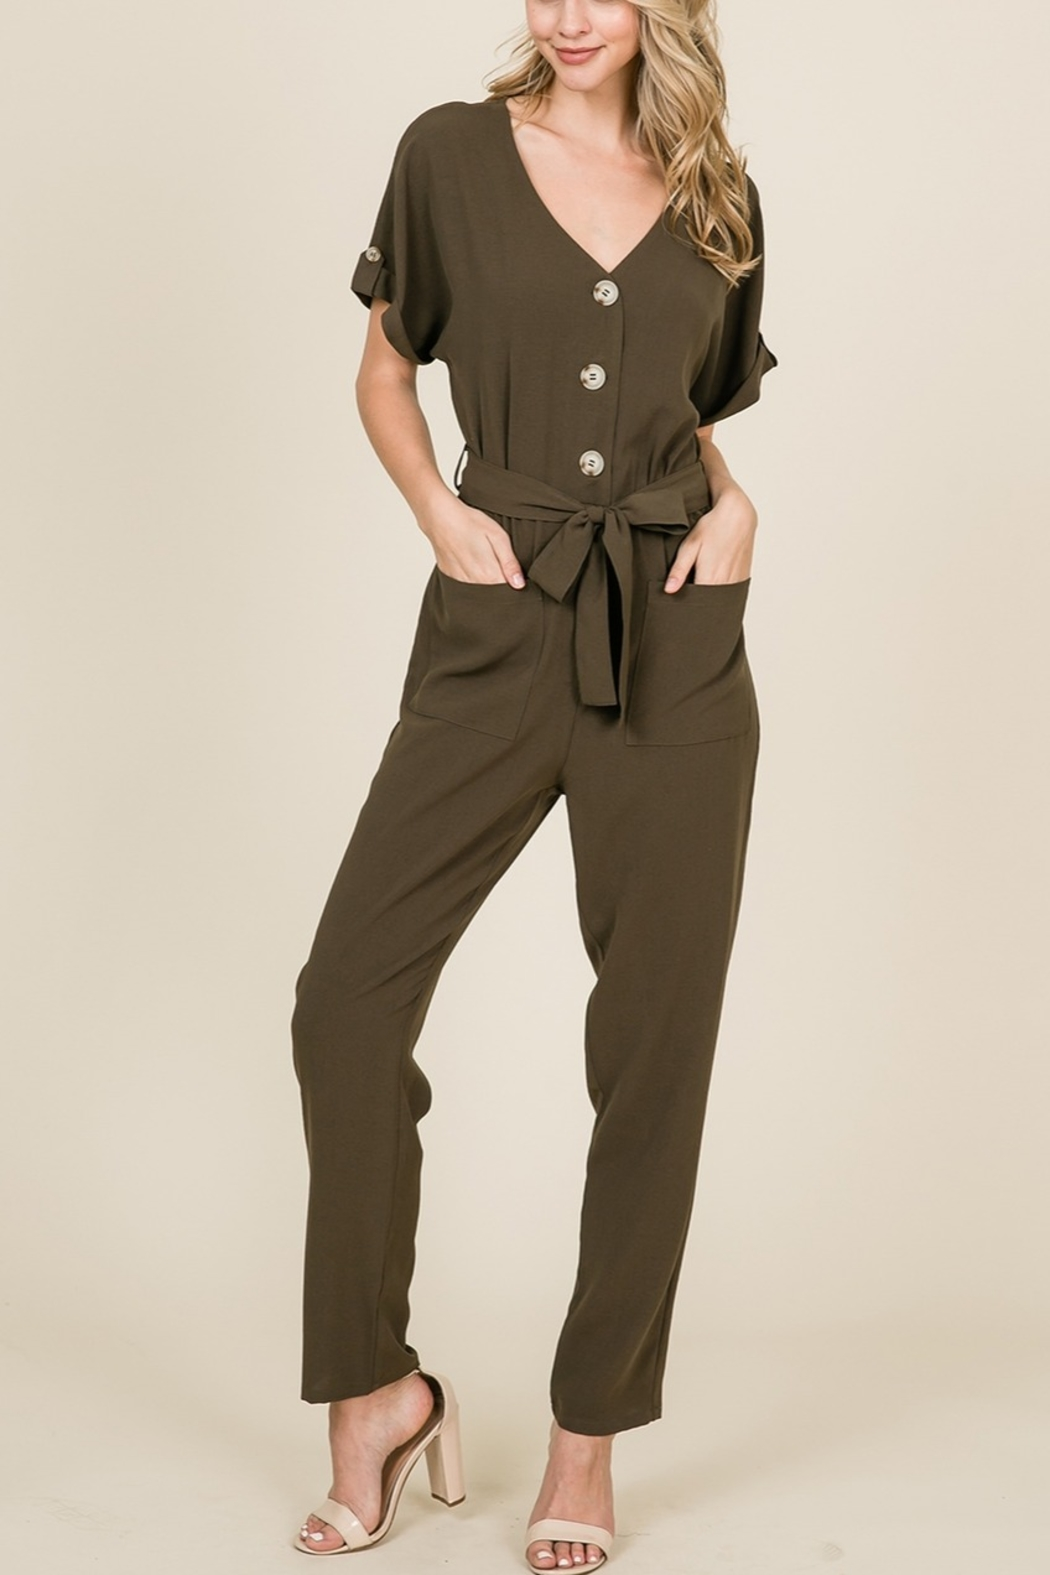 Lyn -Maree's Button Down Jumpsuit - Main Image